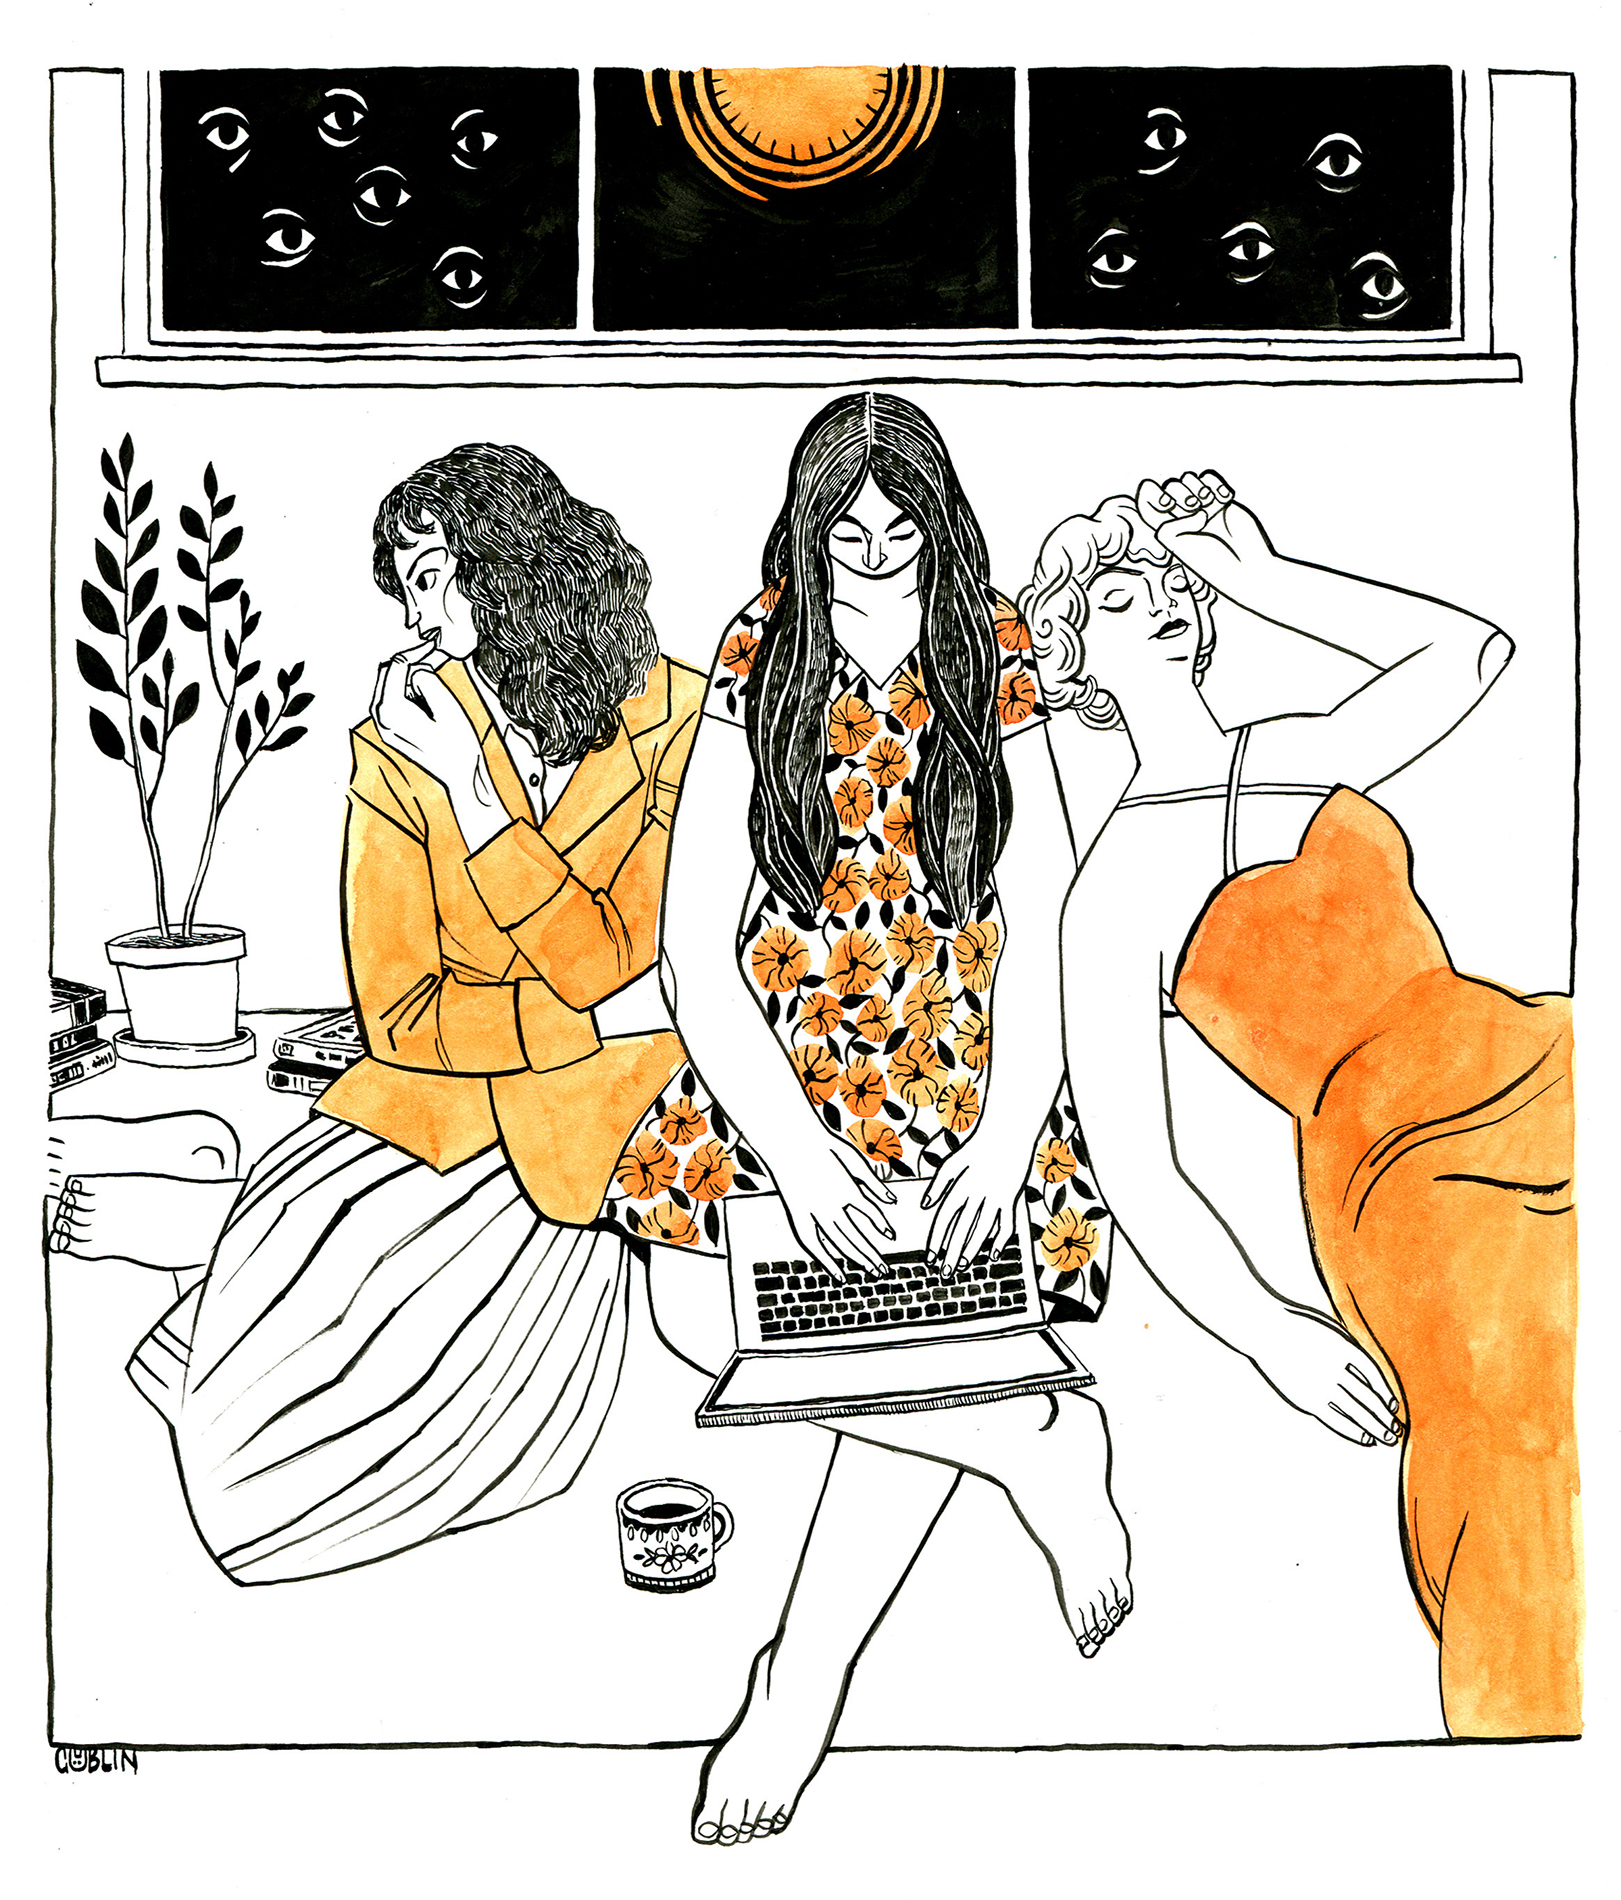 An illustration of three women sitting on the ground under a window filled in in back with a yellow sun and surrealist eyes. The woman in the middle is typing on a laptop, while the other two represent cinema heroines discussed in the written piece.